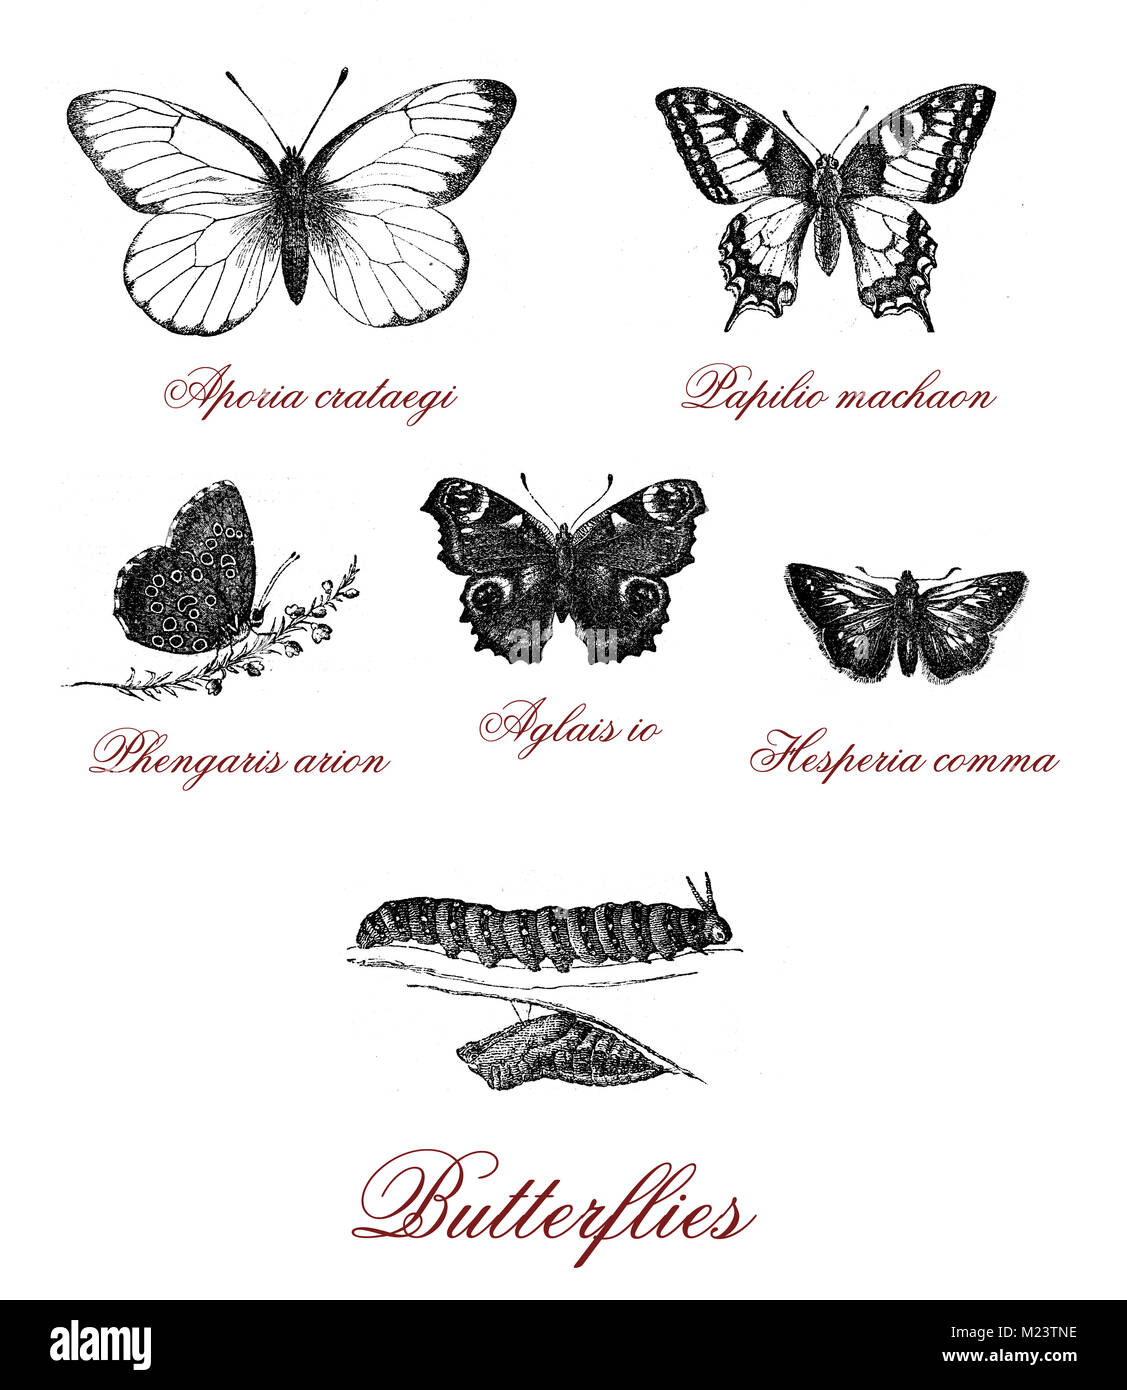 Different kind of butterfly and butterfly metamorphosis, vintage illustration - Stock Image